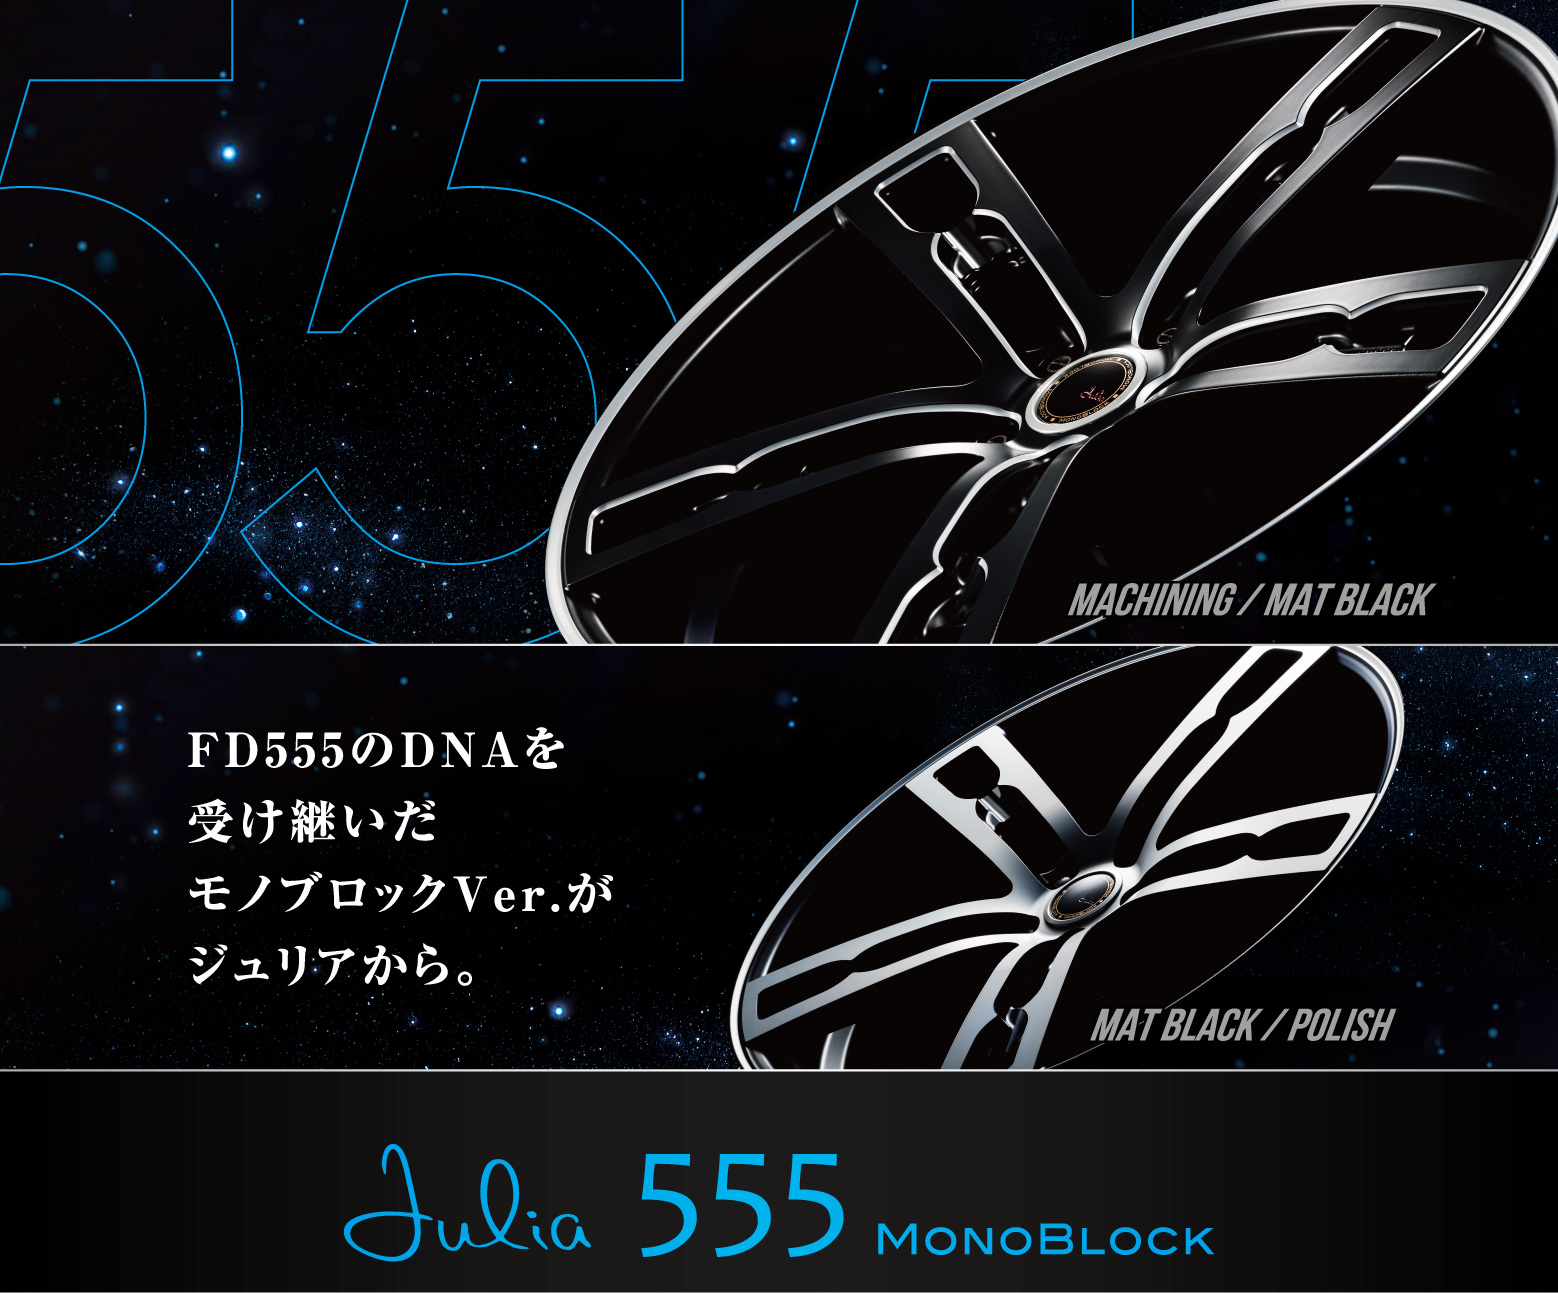 555 MACHINING / MAT BLACK FD555のDNAを受け継いだモノブロックVer.がジュリアから。 MAT BLACK / POLISH Julia 555 MONOBLOCK